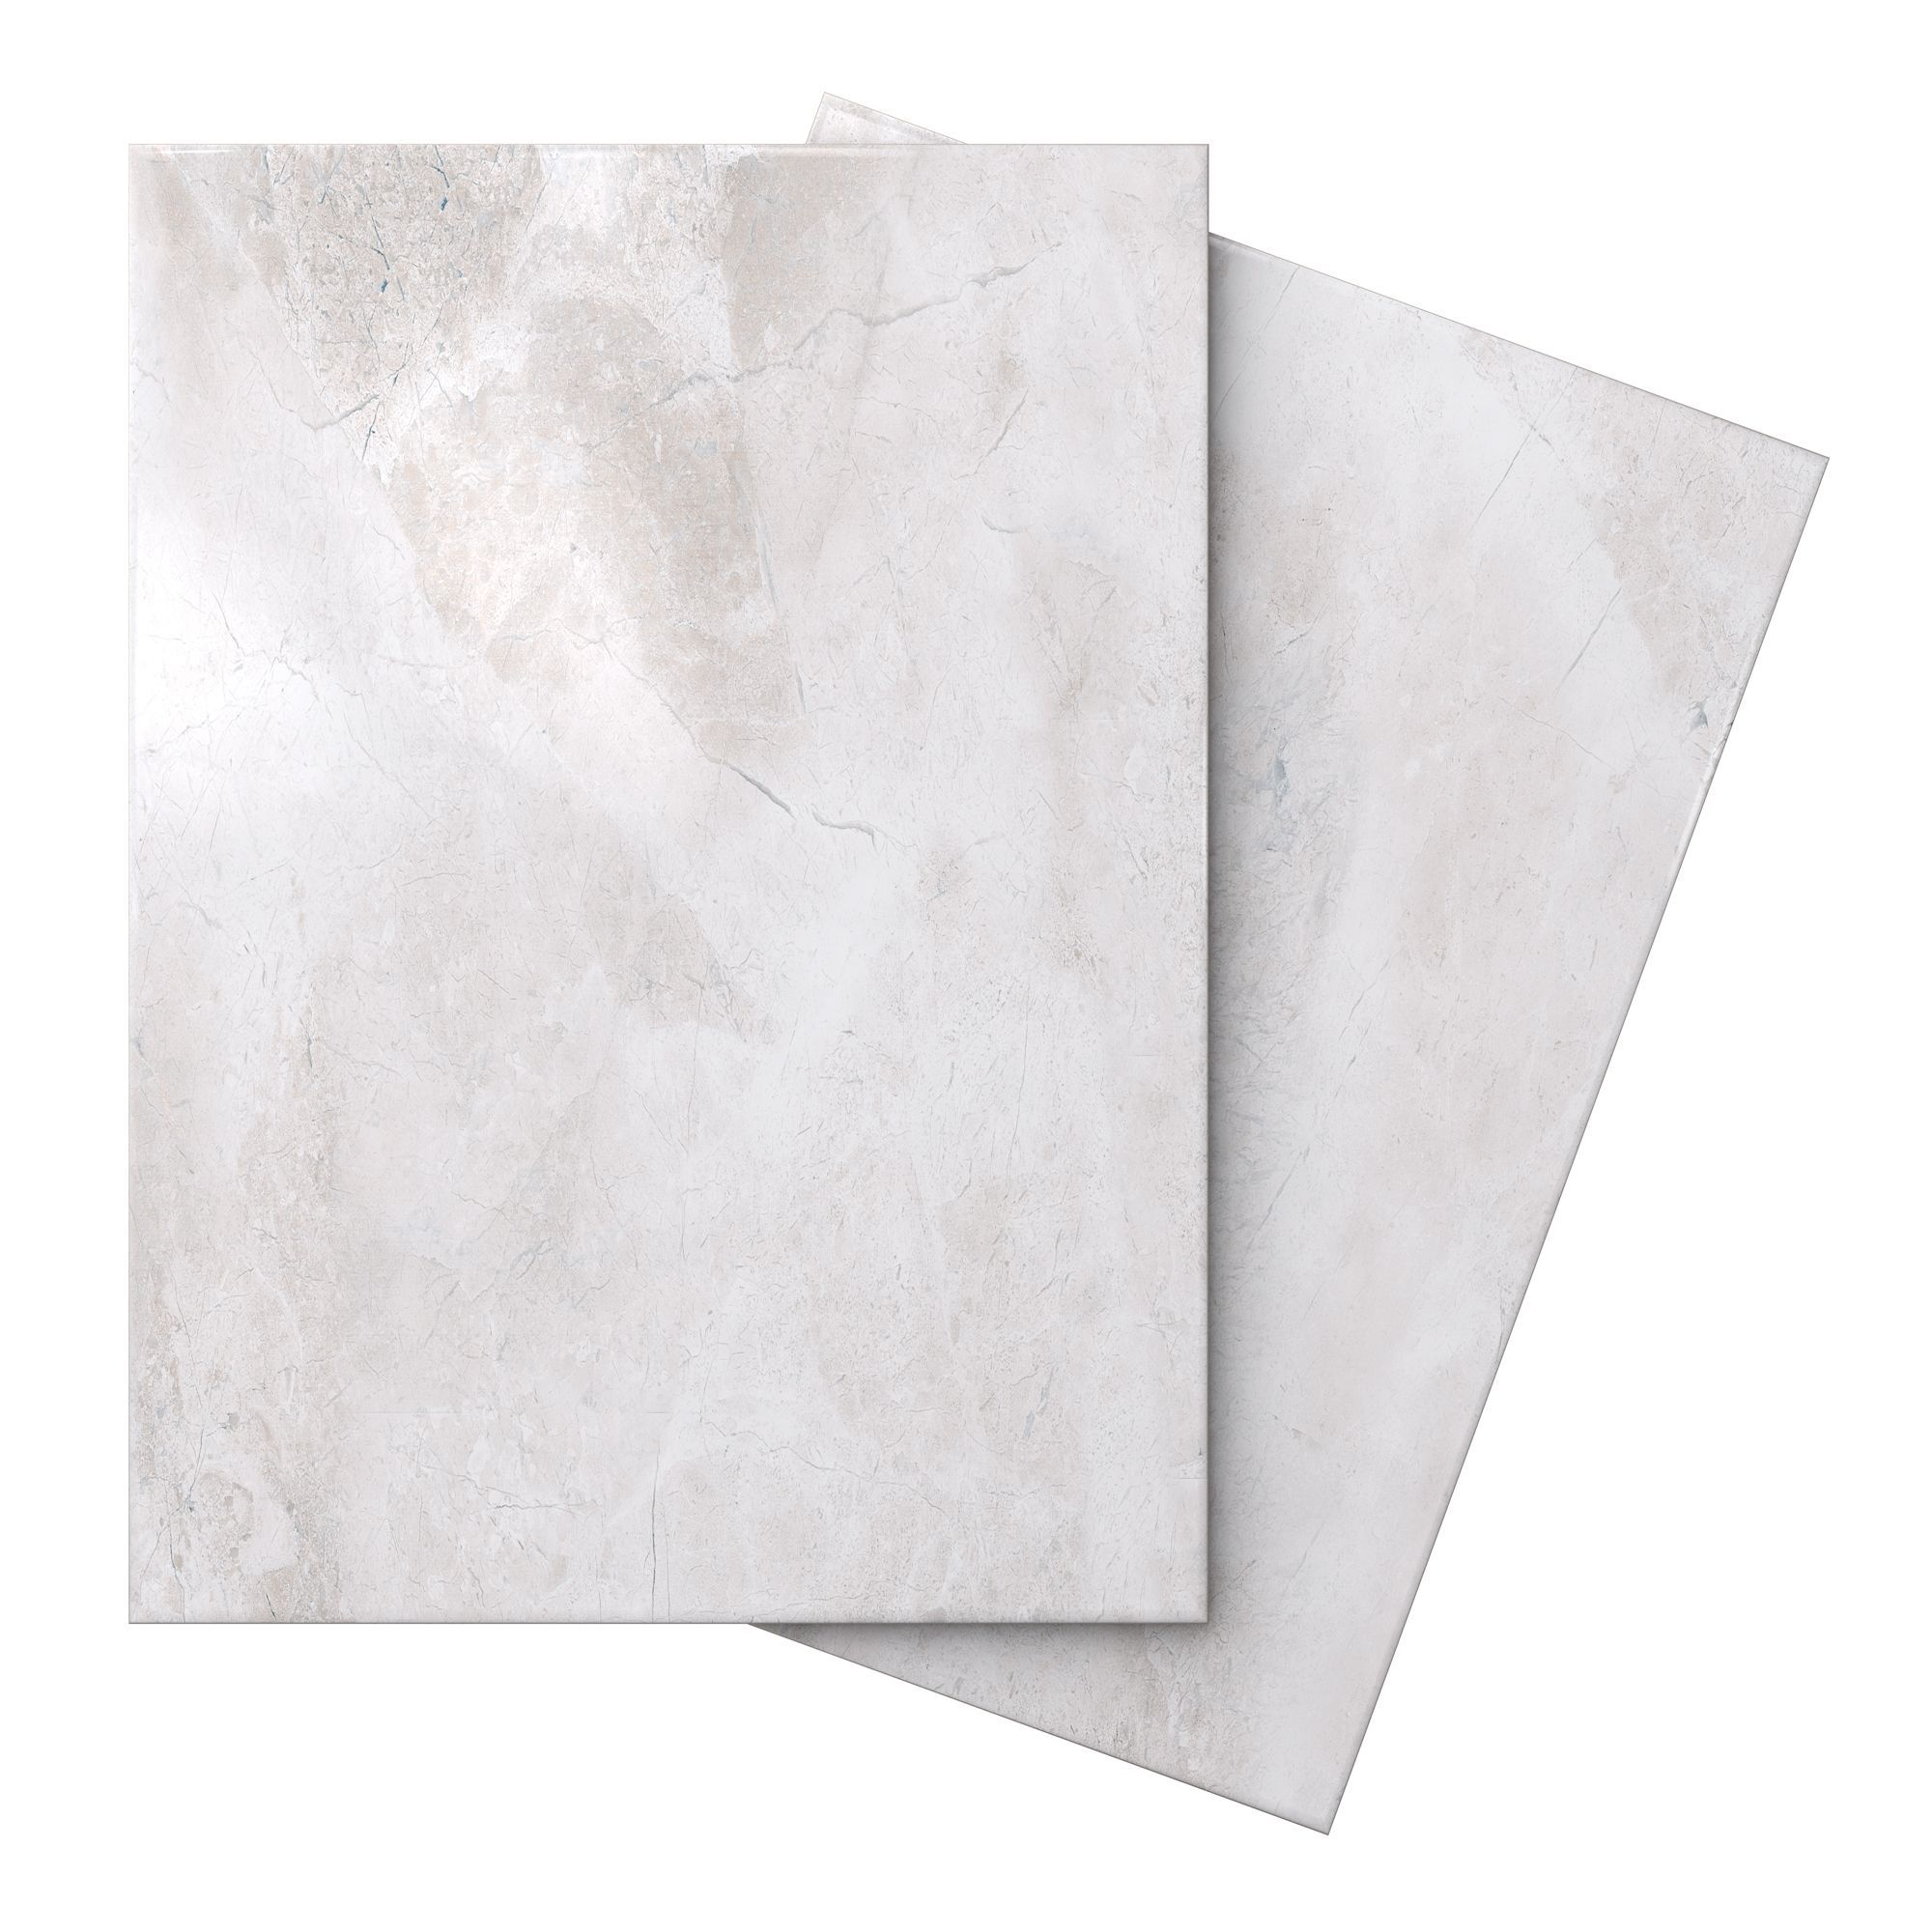 Illusion White Marble Effect Ceramic Wall & Floor Tile, Pack Of 10, (l)360mm (w)275mm